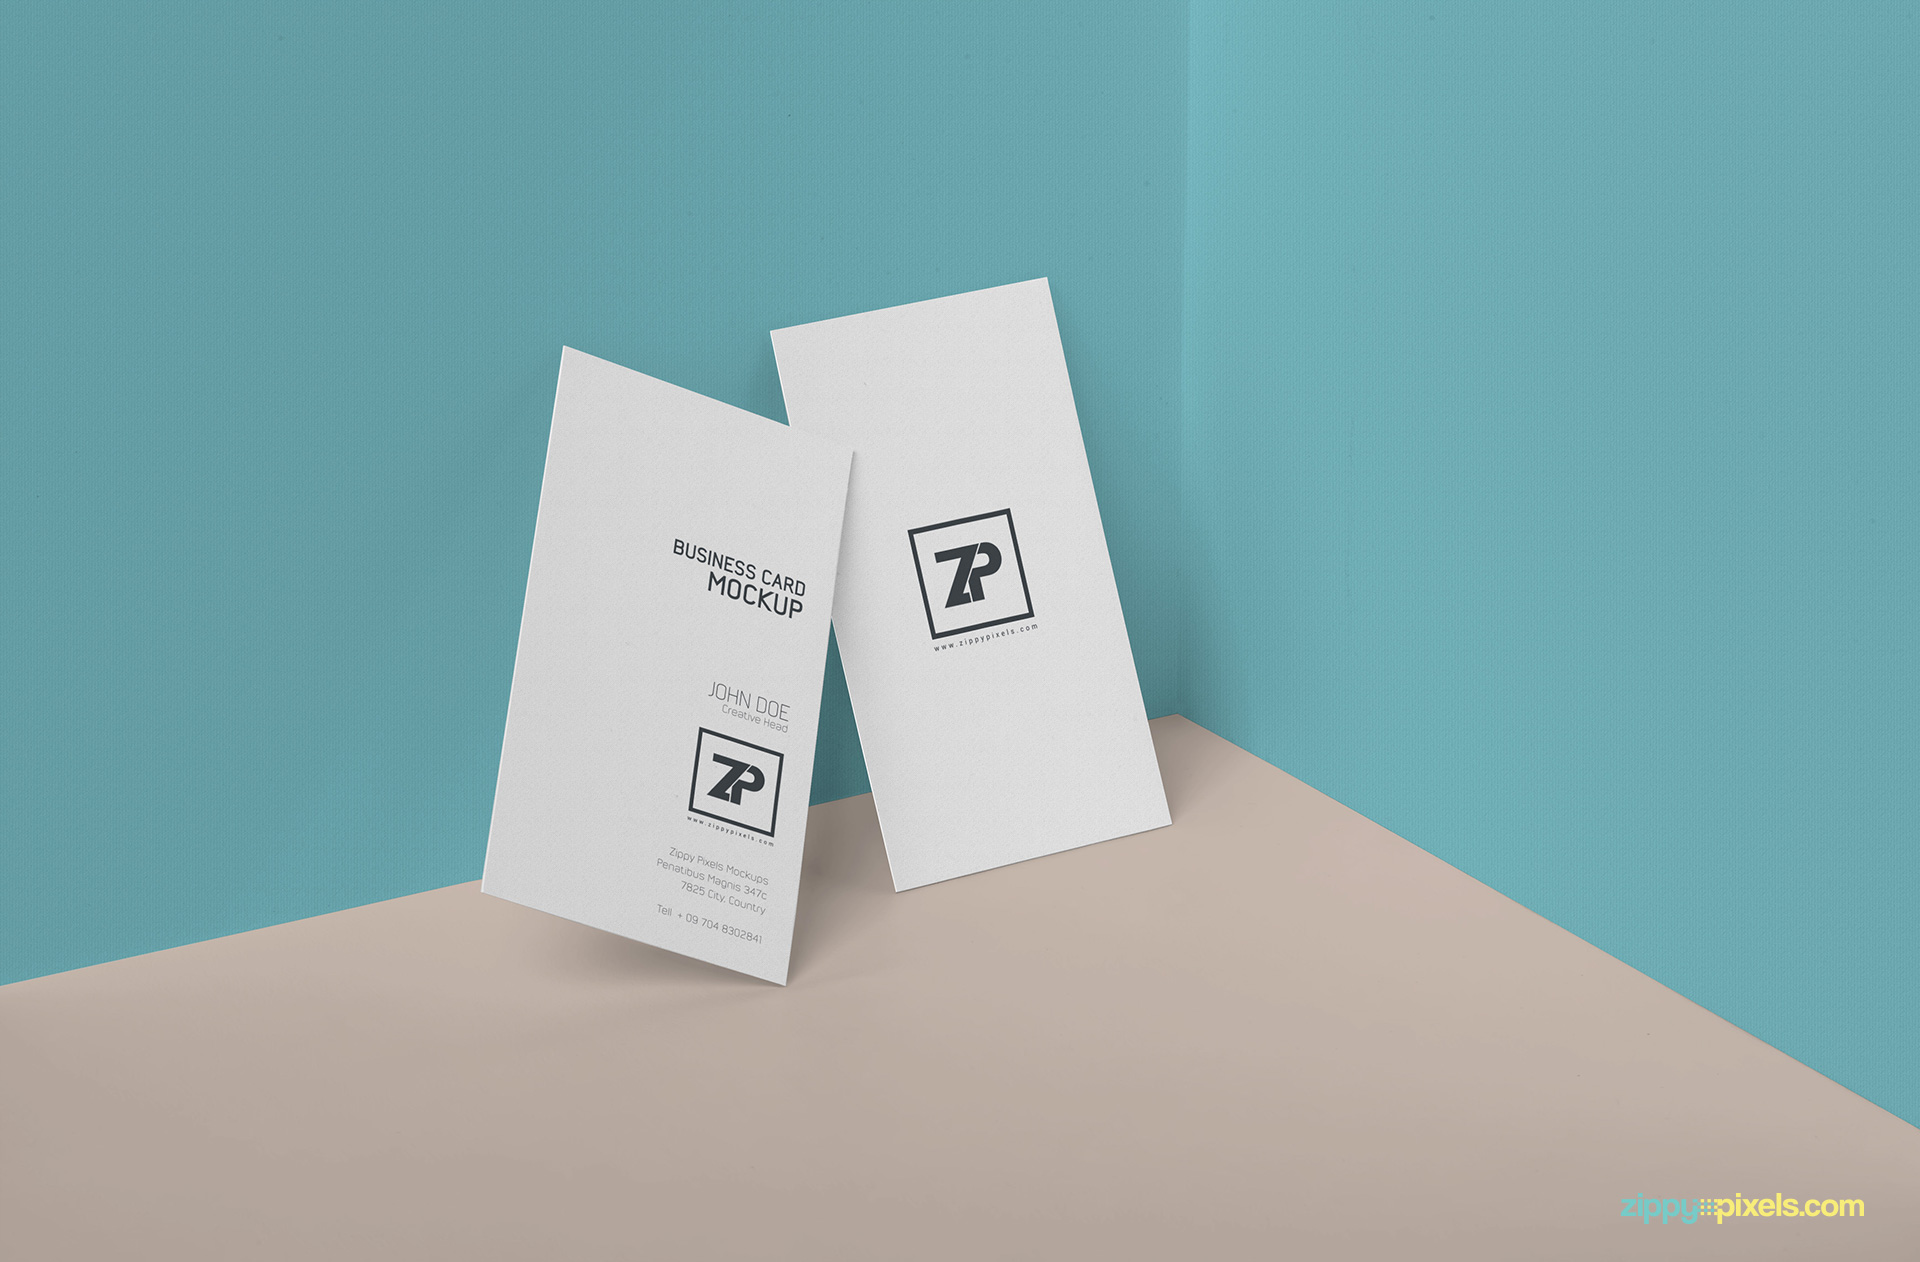 Free business card mockup psd zippypixels 01 free business card mockup psd 824x542 reheart